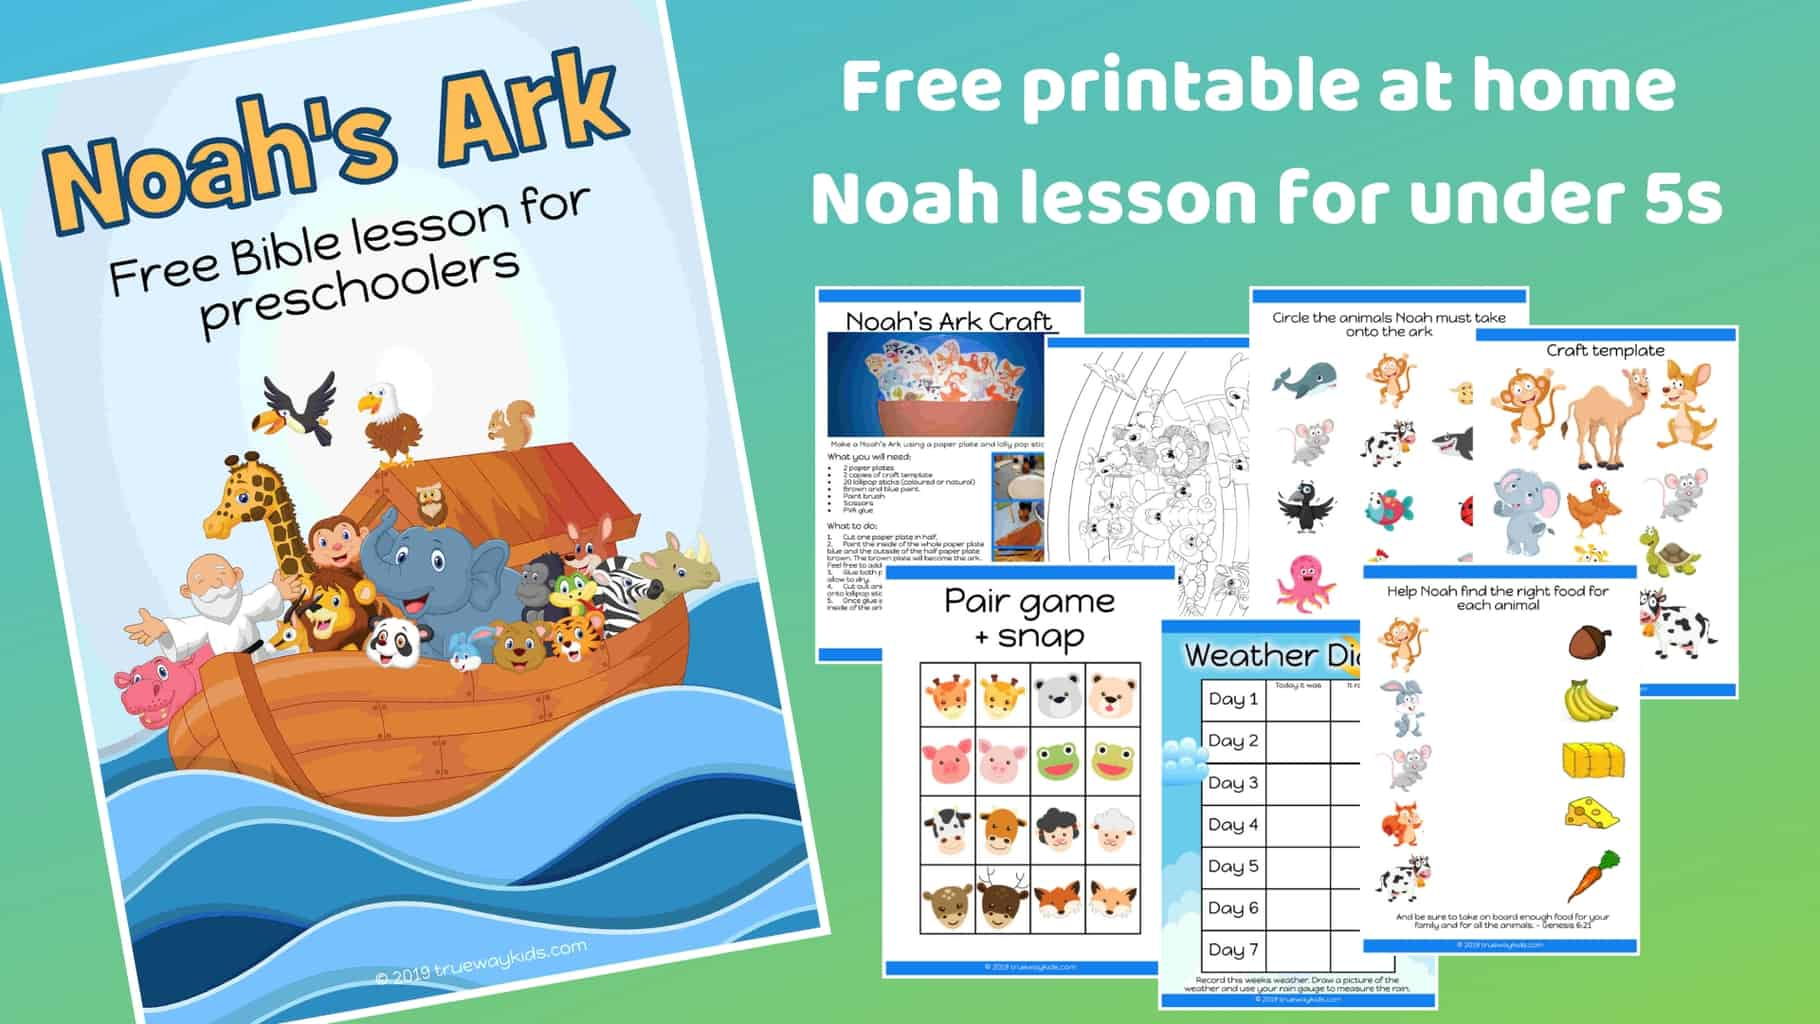 picture regarding Free Printable Pictures of Noah's Ark identified as Noahs Ark - No cost printable Bible lesson for preschoolers